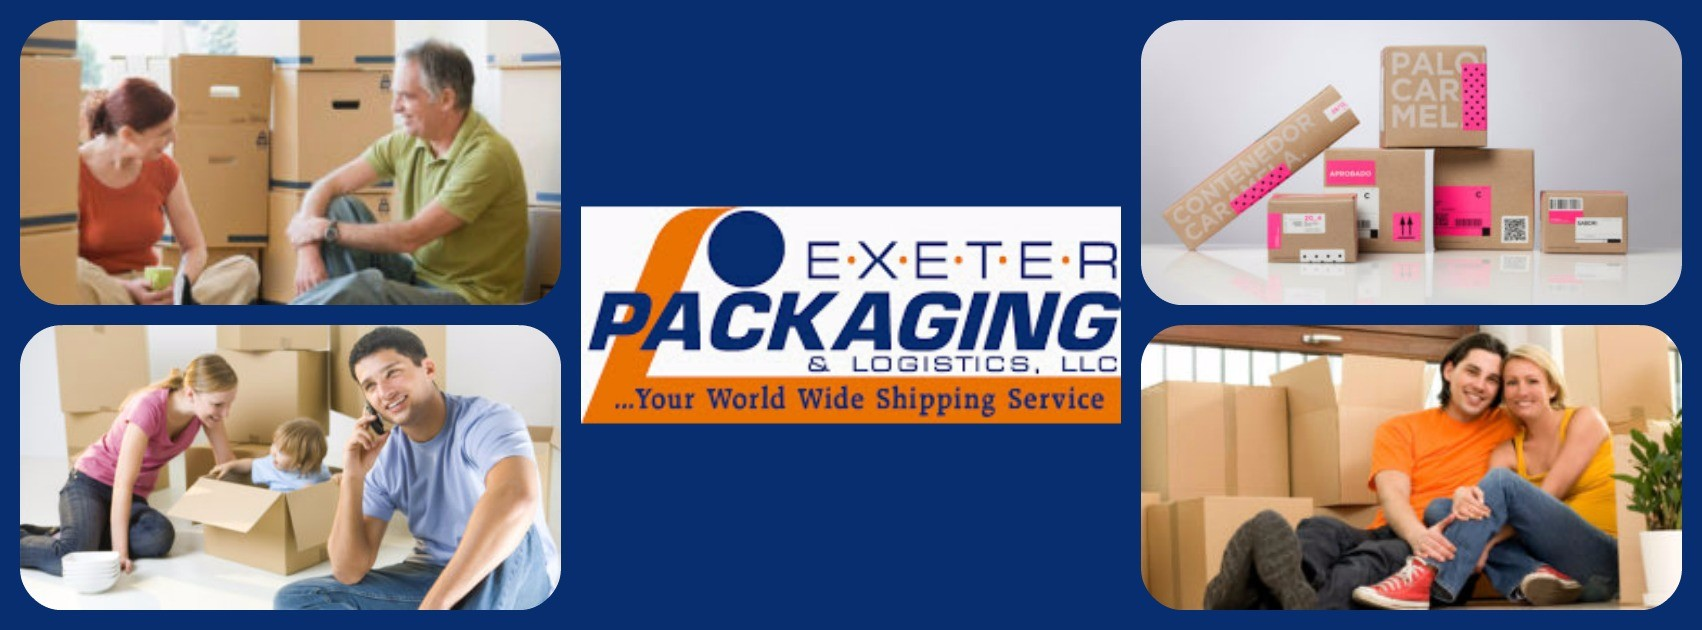 Exeter Packaging Slider 6